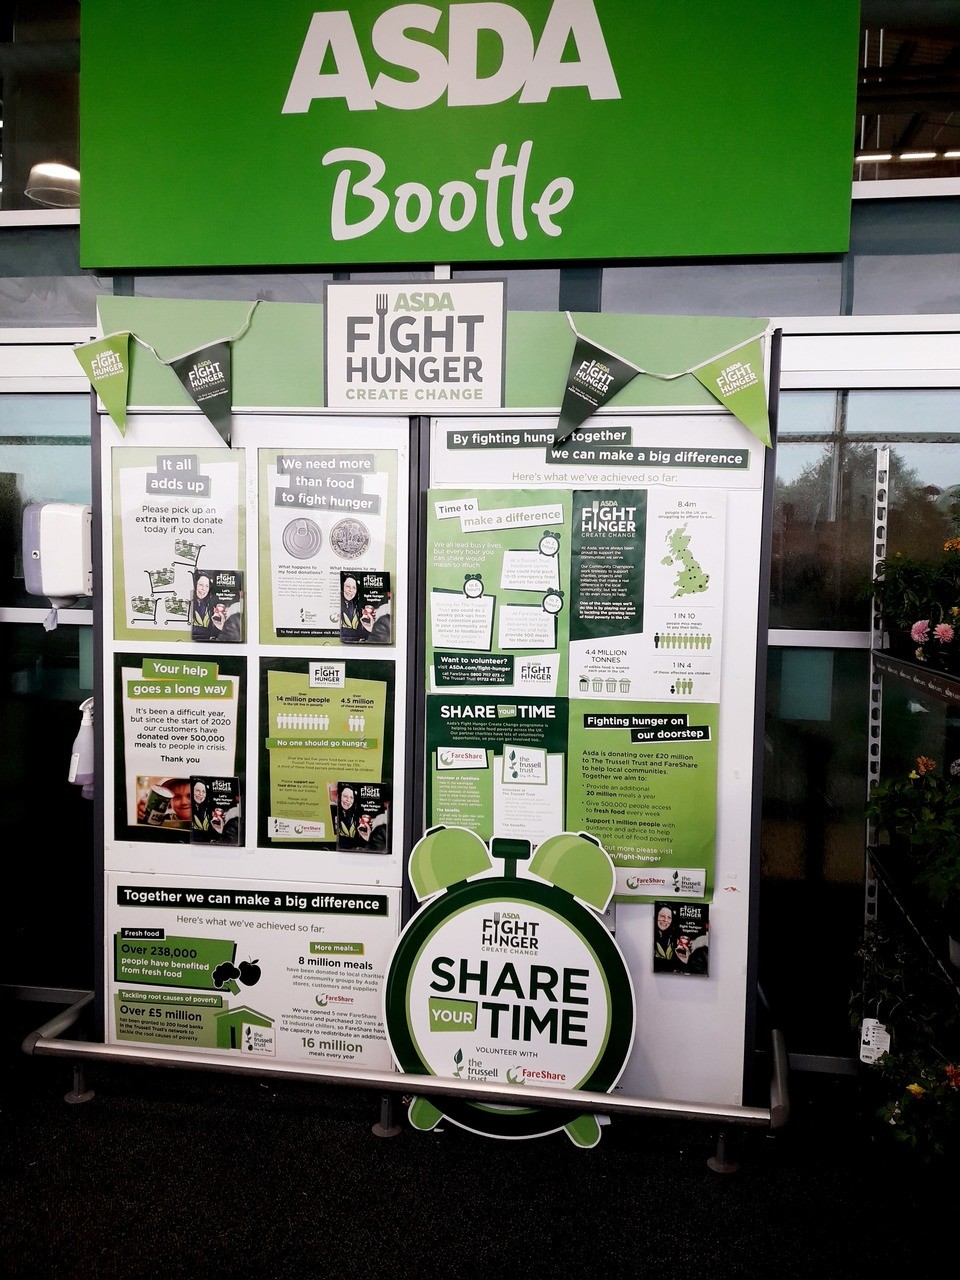 Fight Hunger support | Asda Bootle